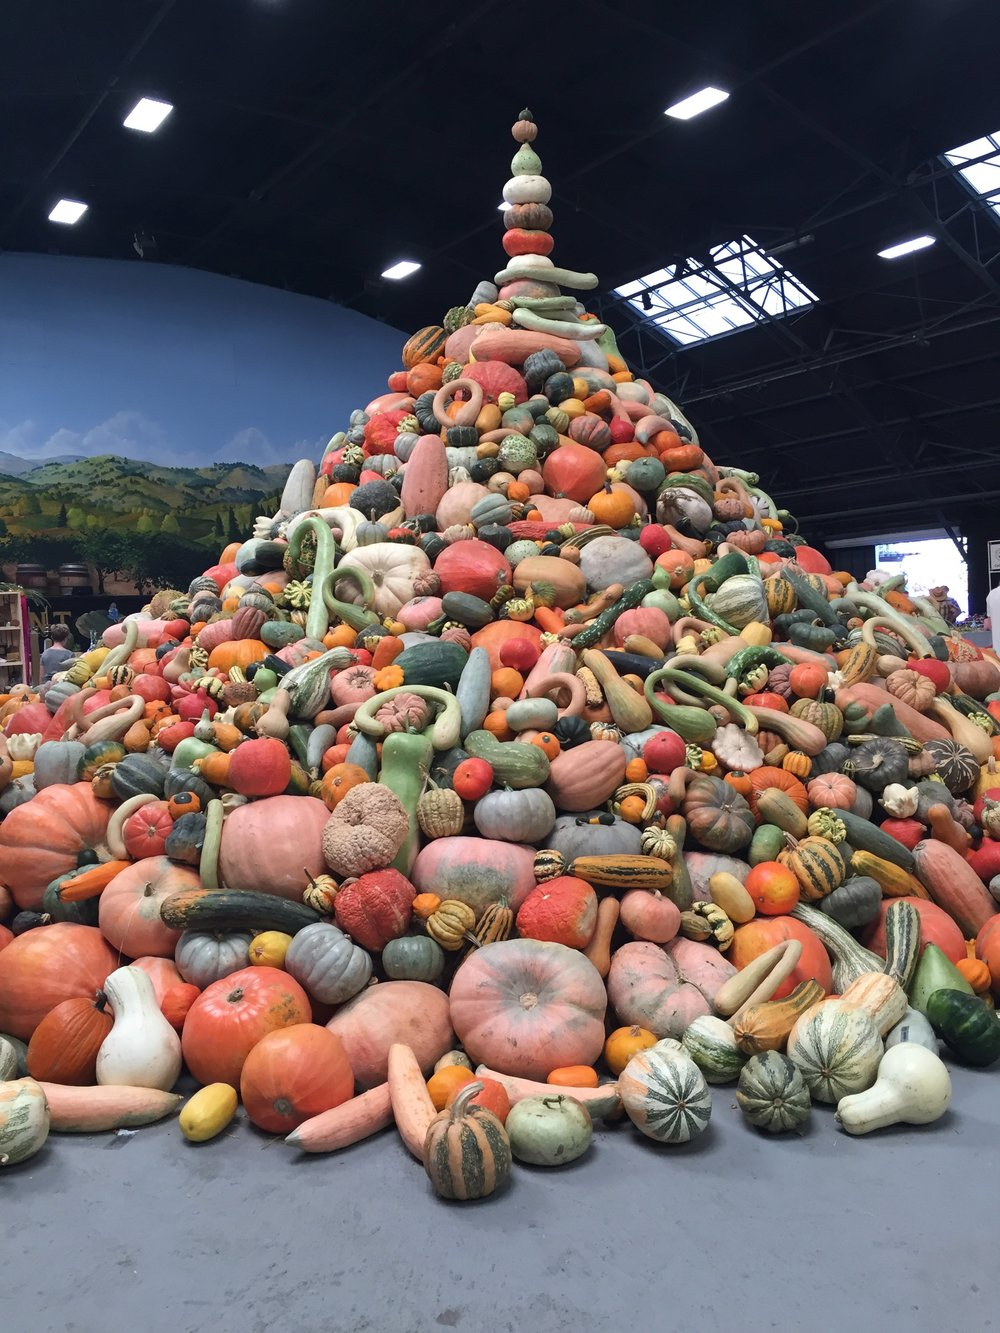 the famous squash tower